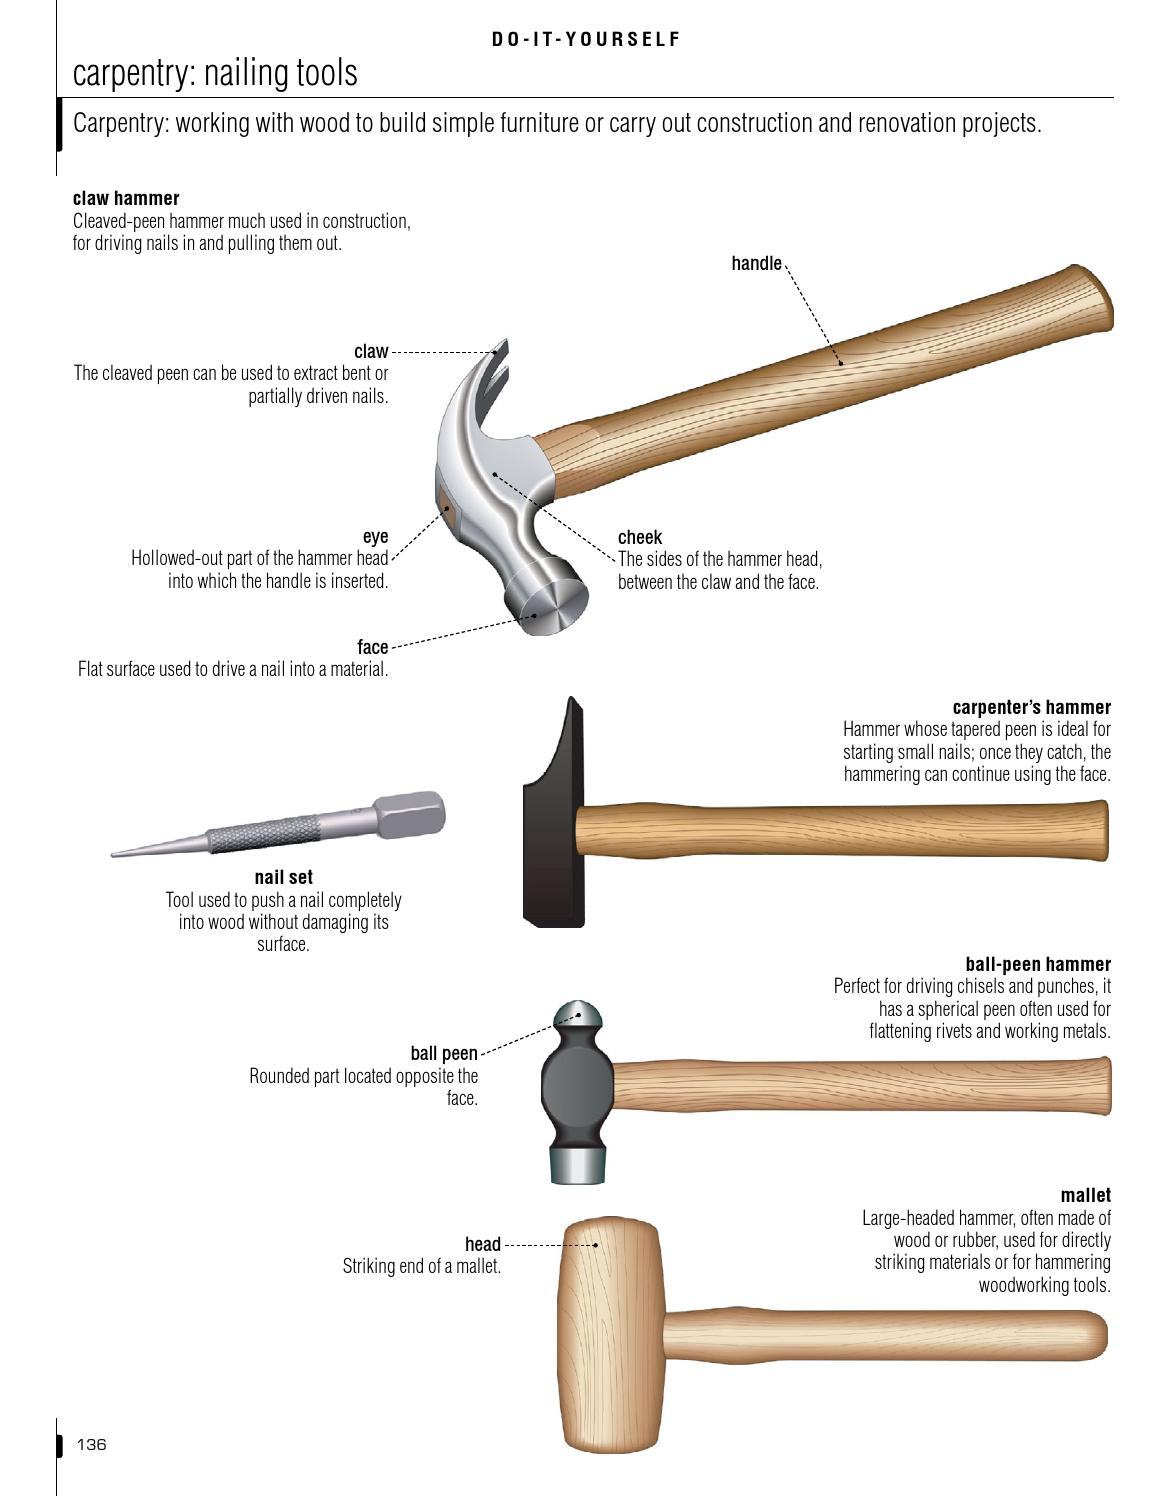 The House Of Hammer the visual dictionary of house & do it yourself by the